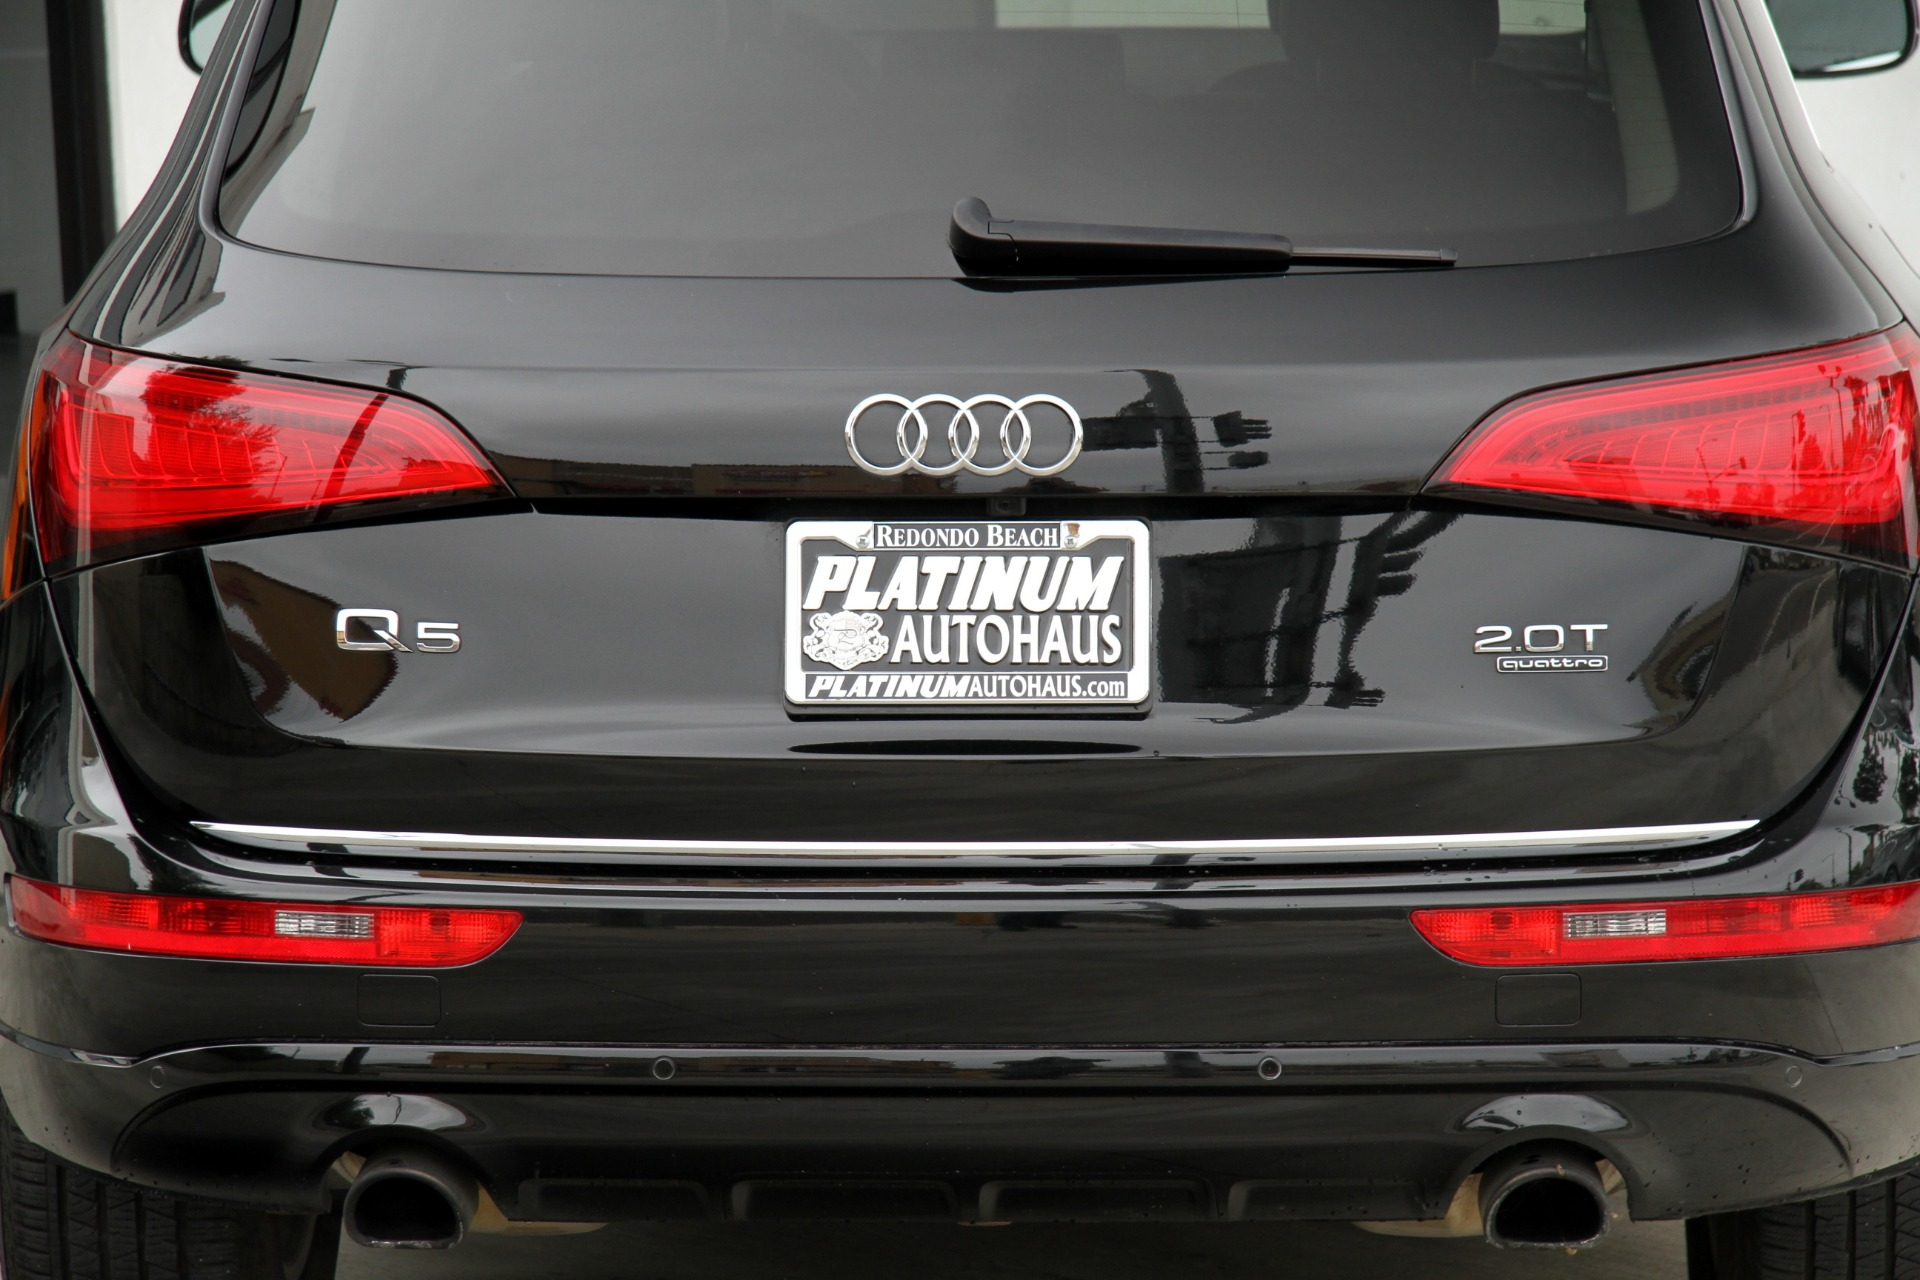 Audi Dealership Near Me >> 2015 Audi Q5 2.0T quattro Premium Plus *** LOW MILES *** Stock # 6254 for sale near Redondo ...